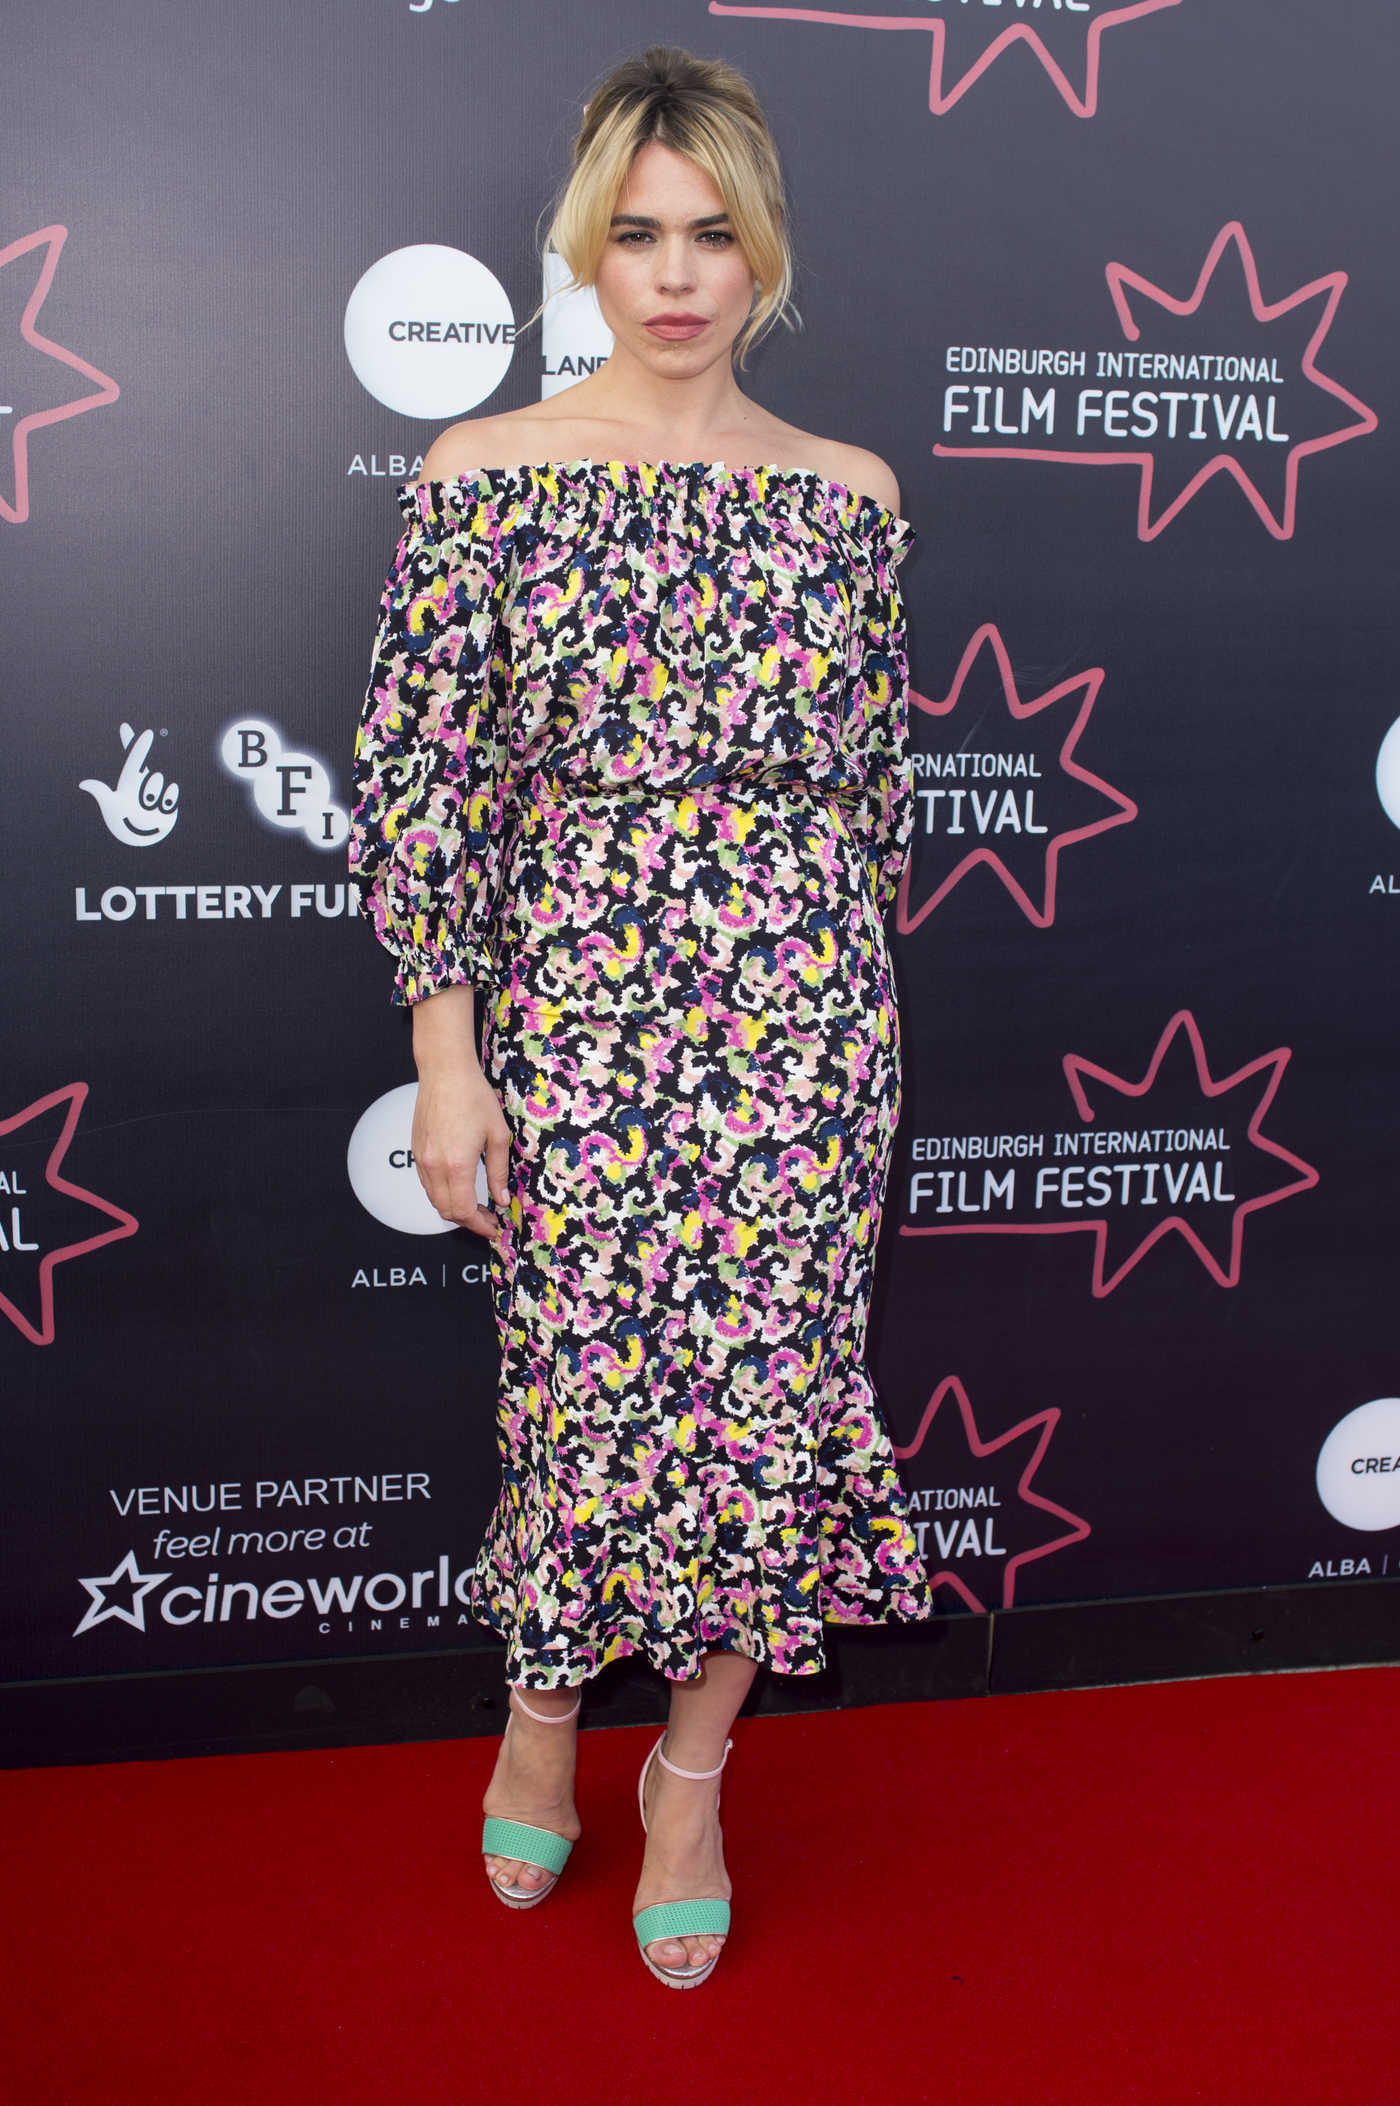 Billie Piper at the Two for Joy Premiere During Edinburgh International Film Festival in Edinburgh 06/23/2018